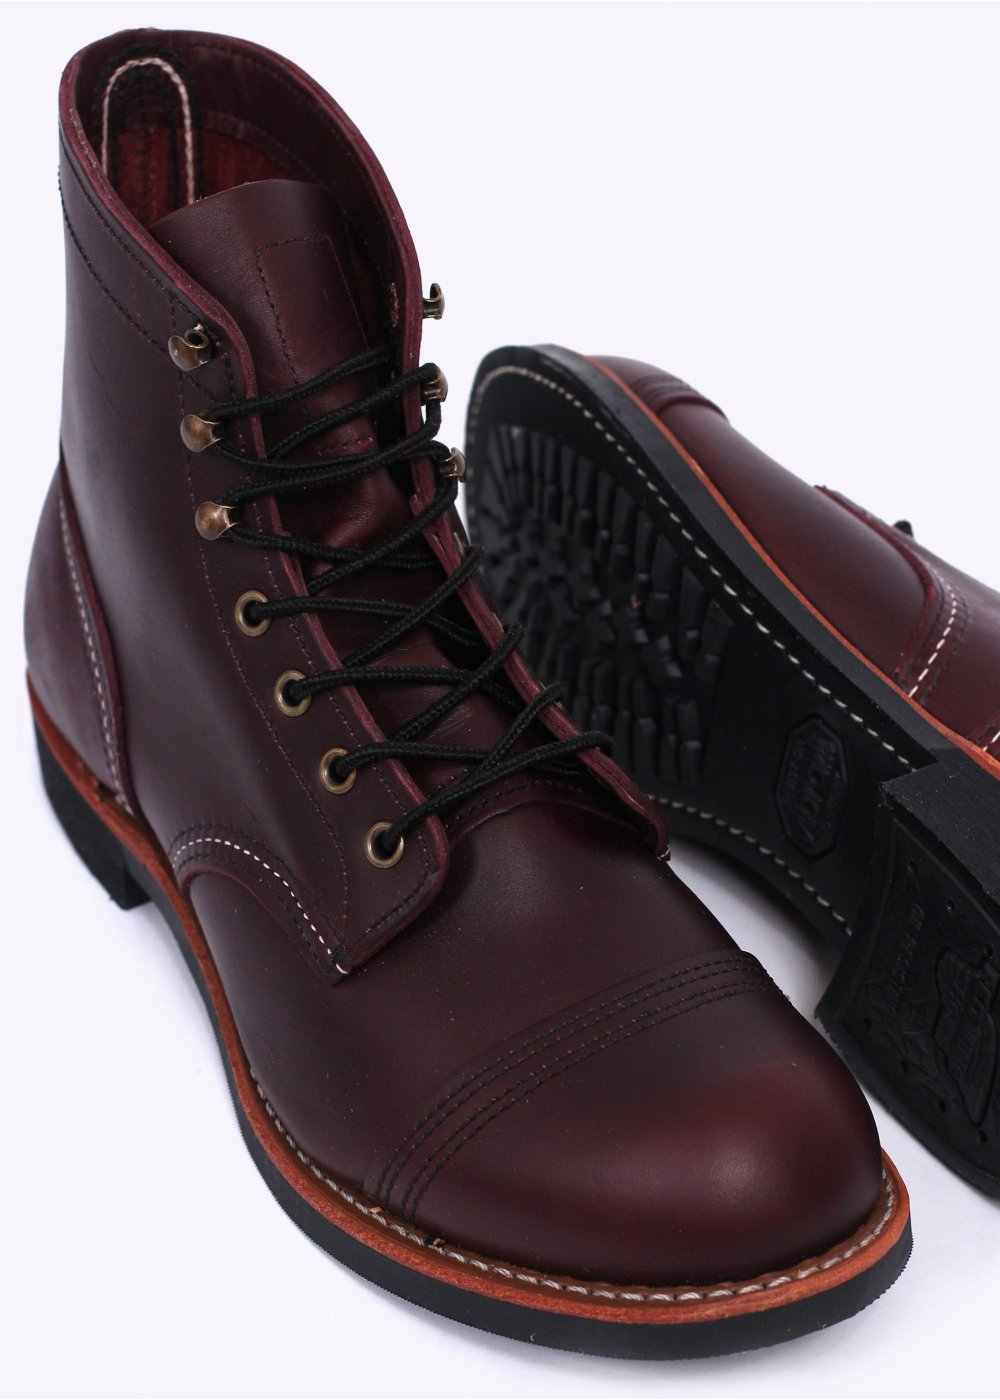 726a7aa57a1 Red Wing Shoes 8119 Heritage Work Iron Ranger Leather Boots - Oxblood